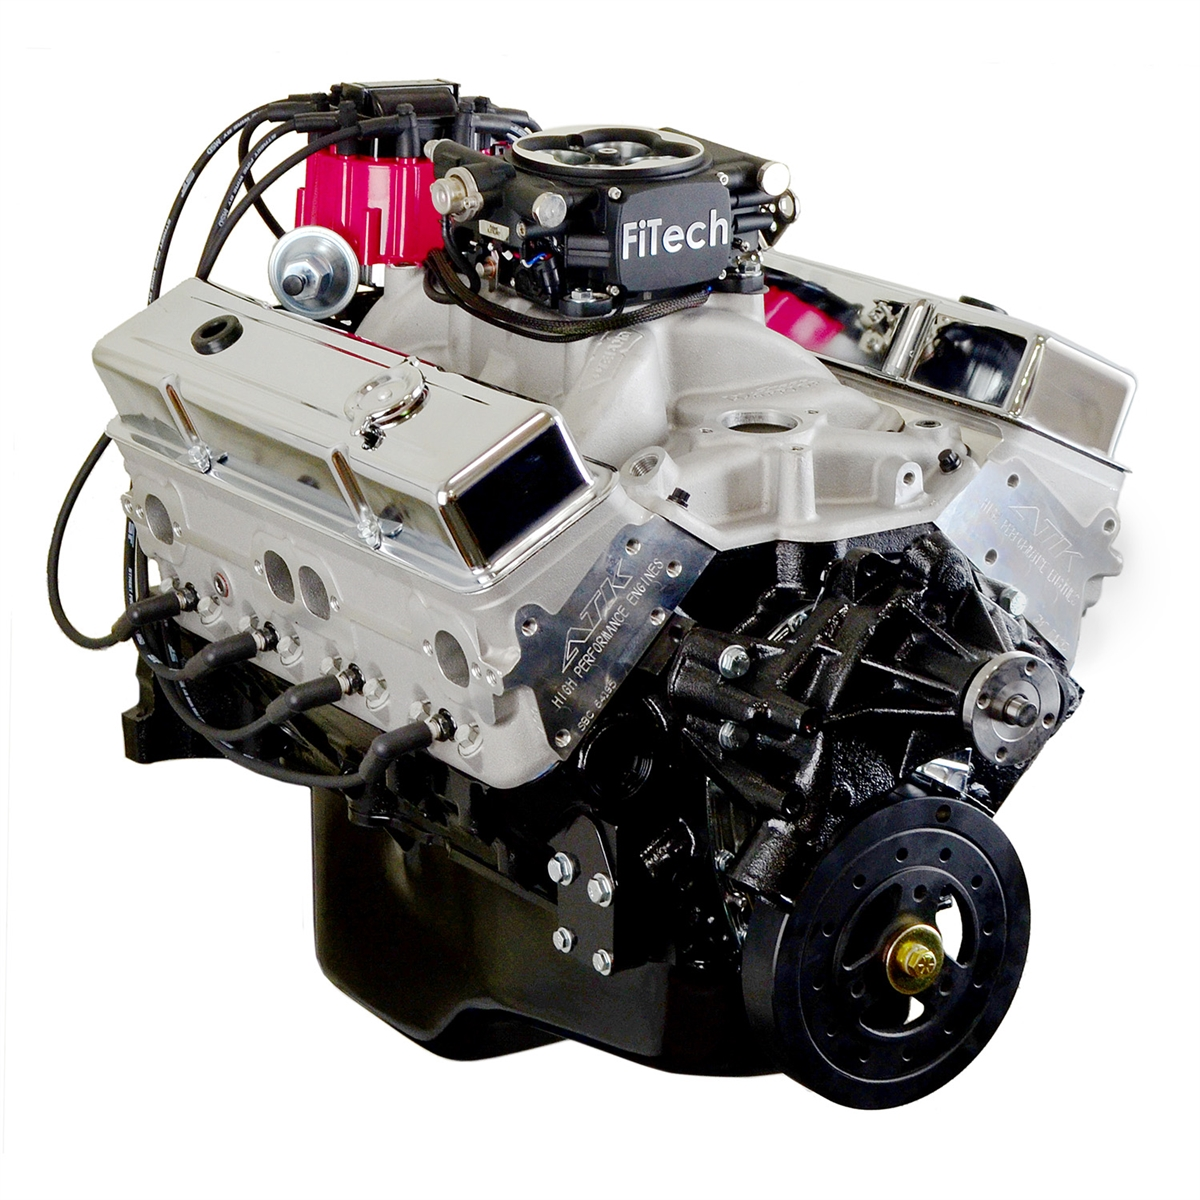 ATK HP89C-EFI Chevy 350 with FITECH EFI 375HP